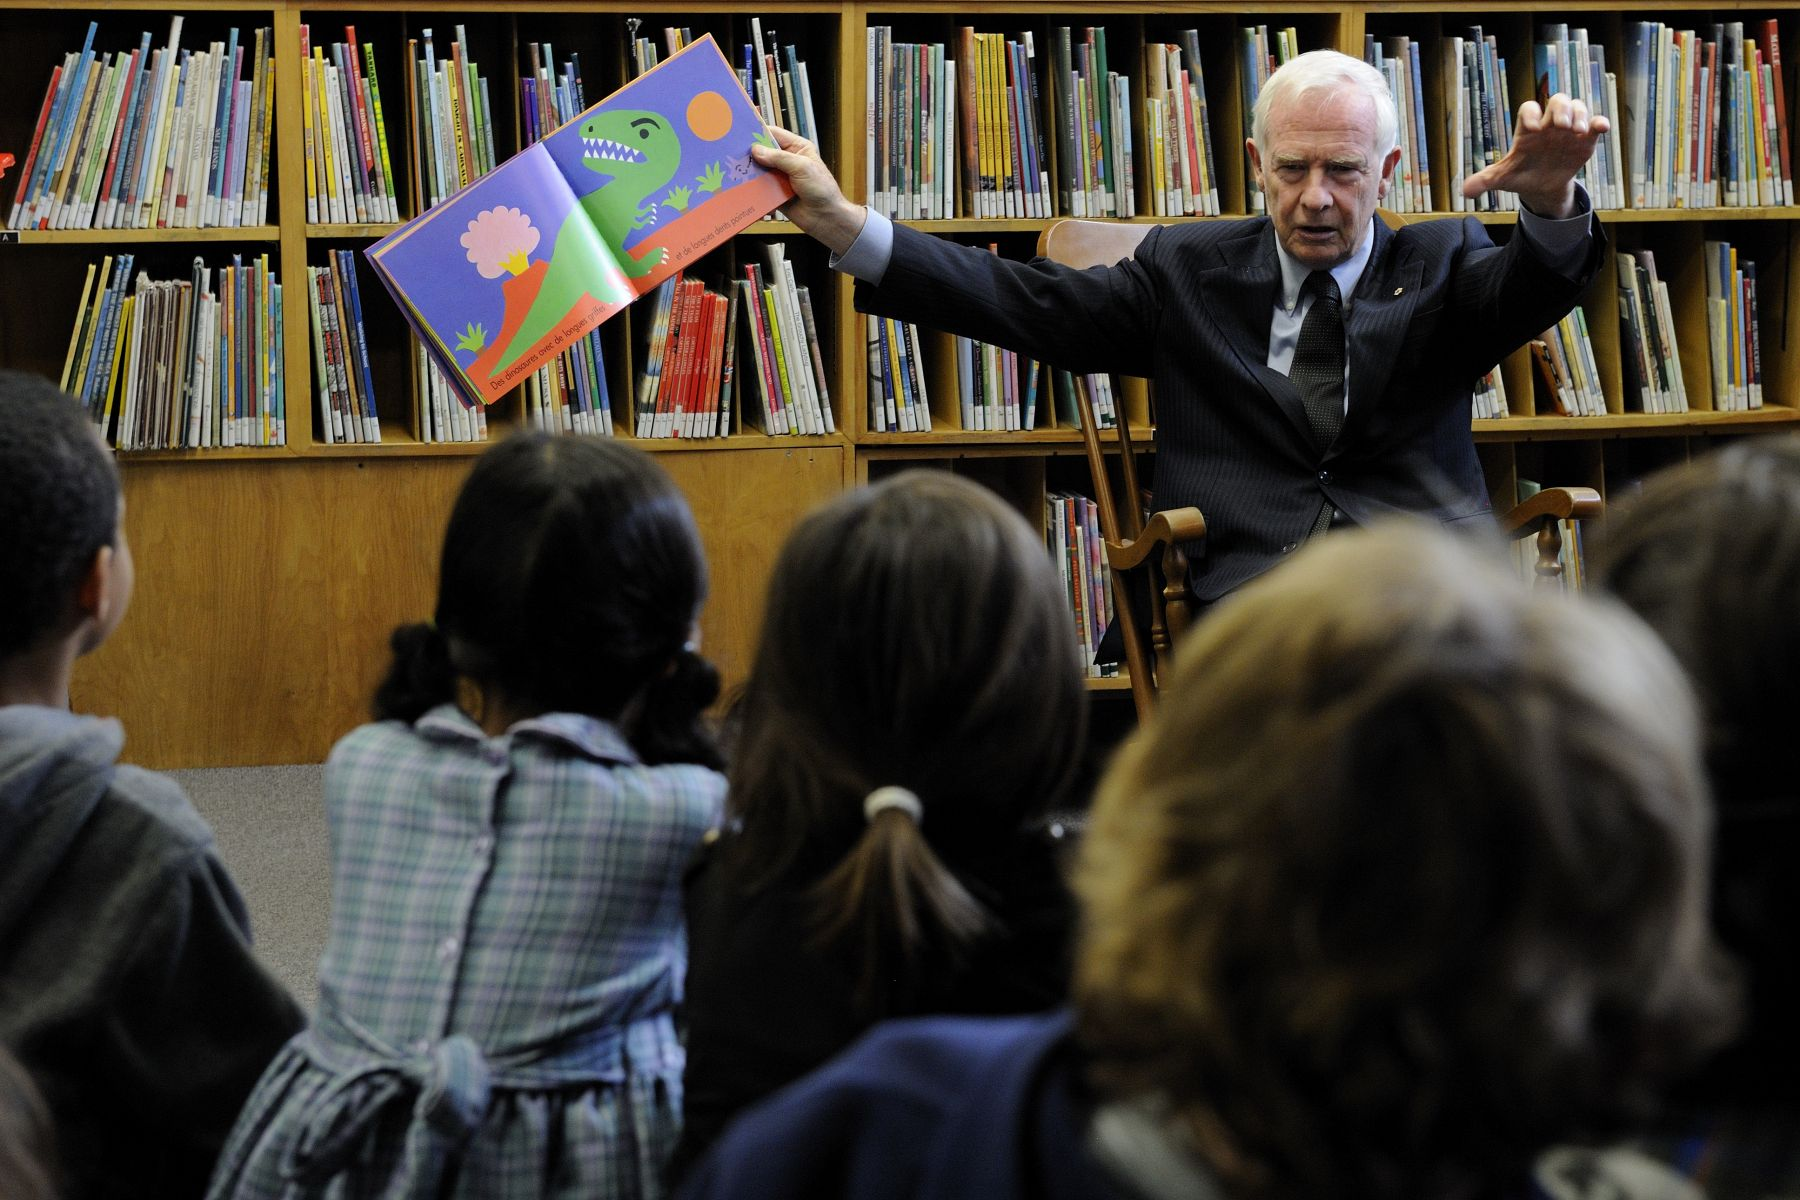 During his visit to the school, the Governor General read a book about dinosaurs to students gathered in the library.